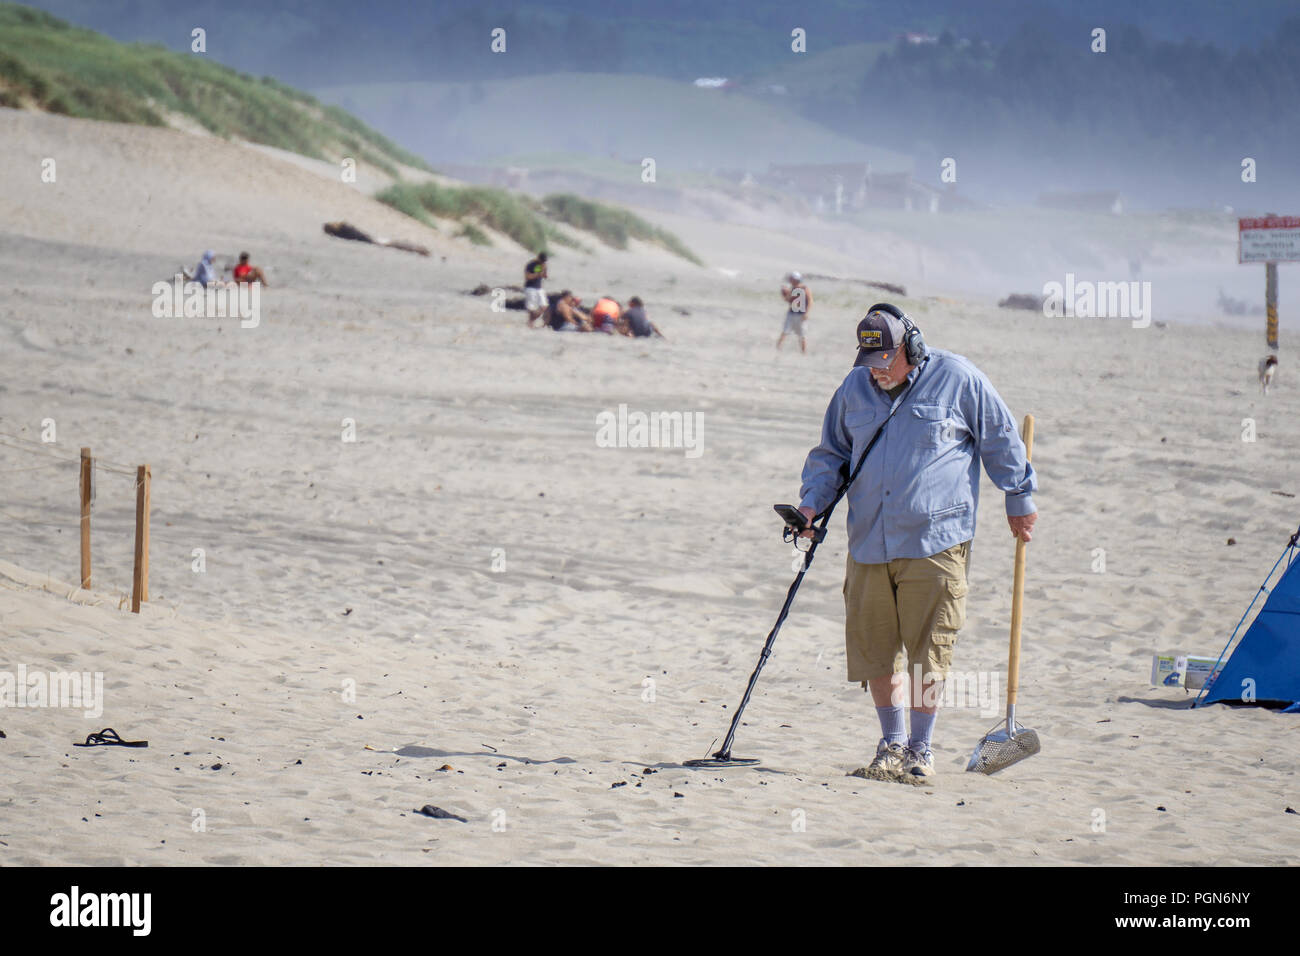 Old man treasure hunter or prospector using a metal detector seeking for lost objects Pacific City beach, Cape Kiwanda, Oregon coast, USA. - Stock Image